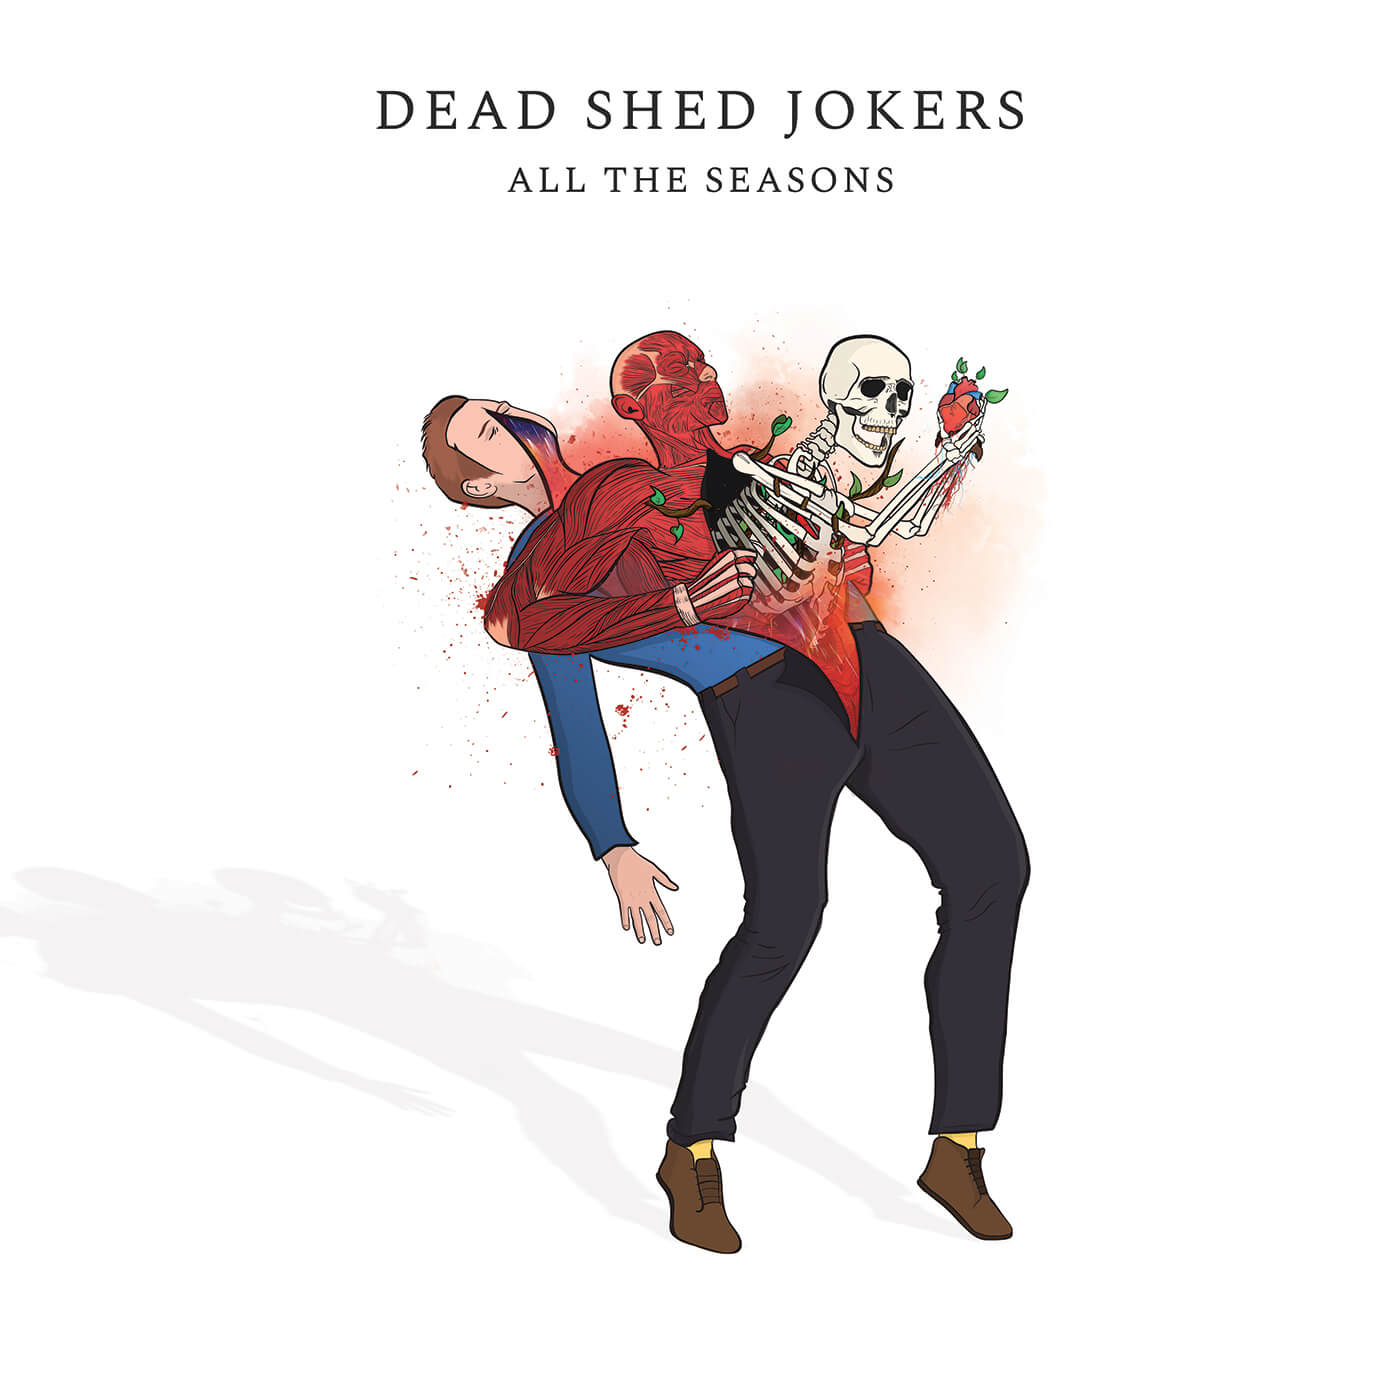 Dead Shed Jokers All The Seasons Album Cover